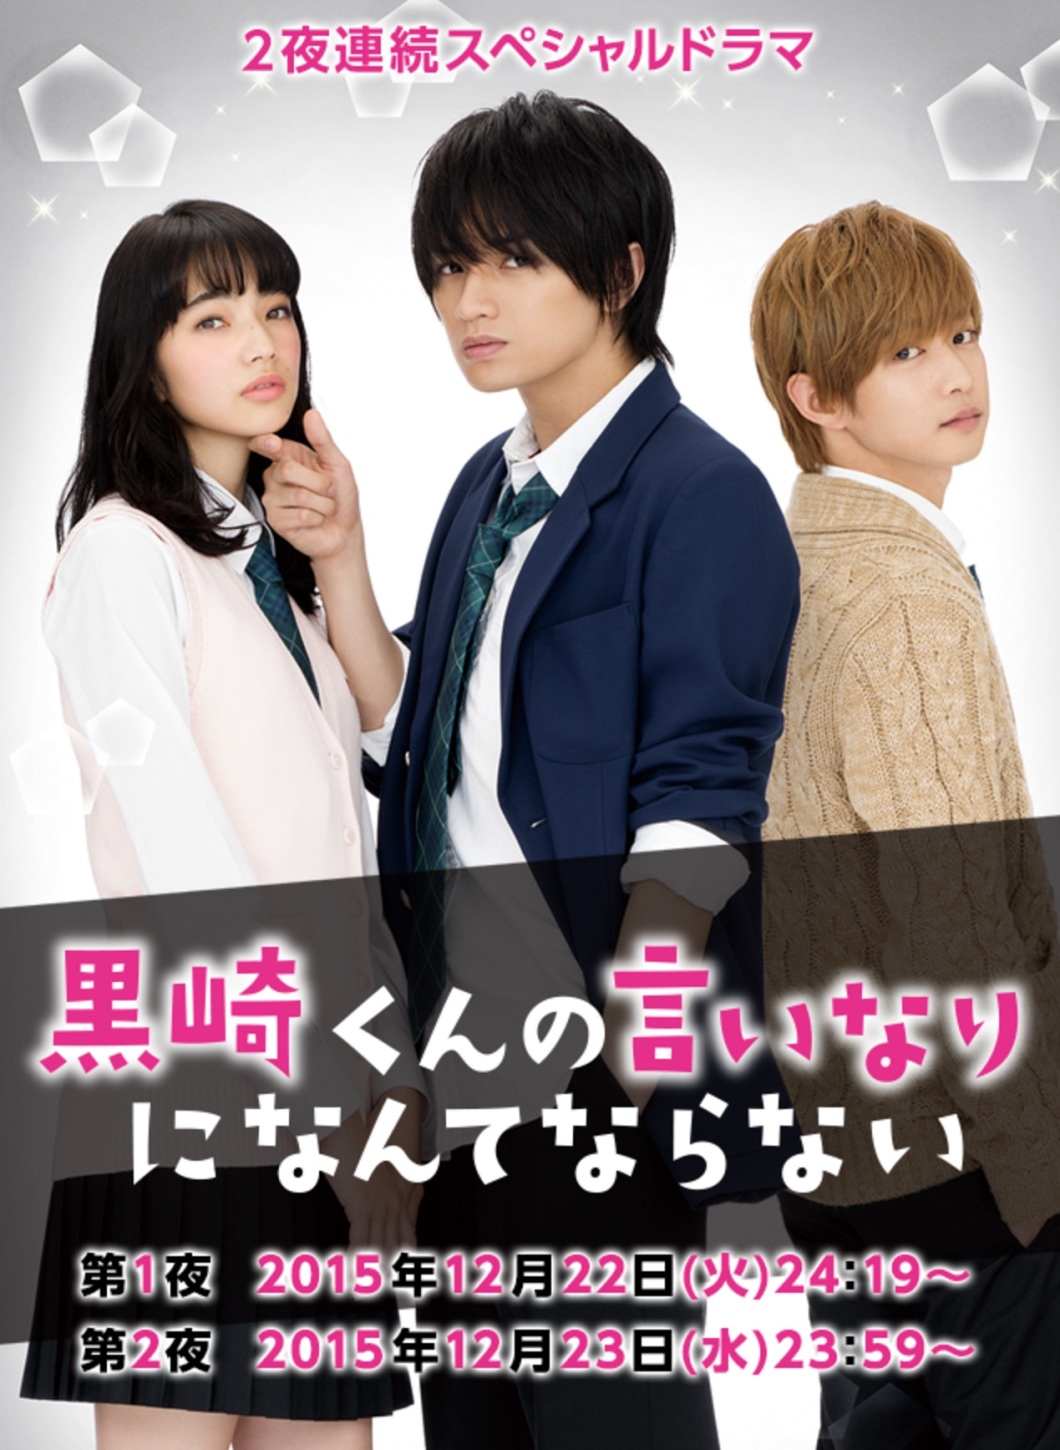 I'm Not Just Going to Do What Kurosaki kun Says - Kurosaki kun no Iinari ni Nante Naranai (Japanese Drama) online legendado em português na Dopeka  http://dopeka.com/